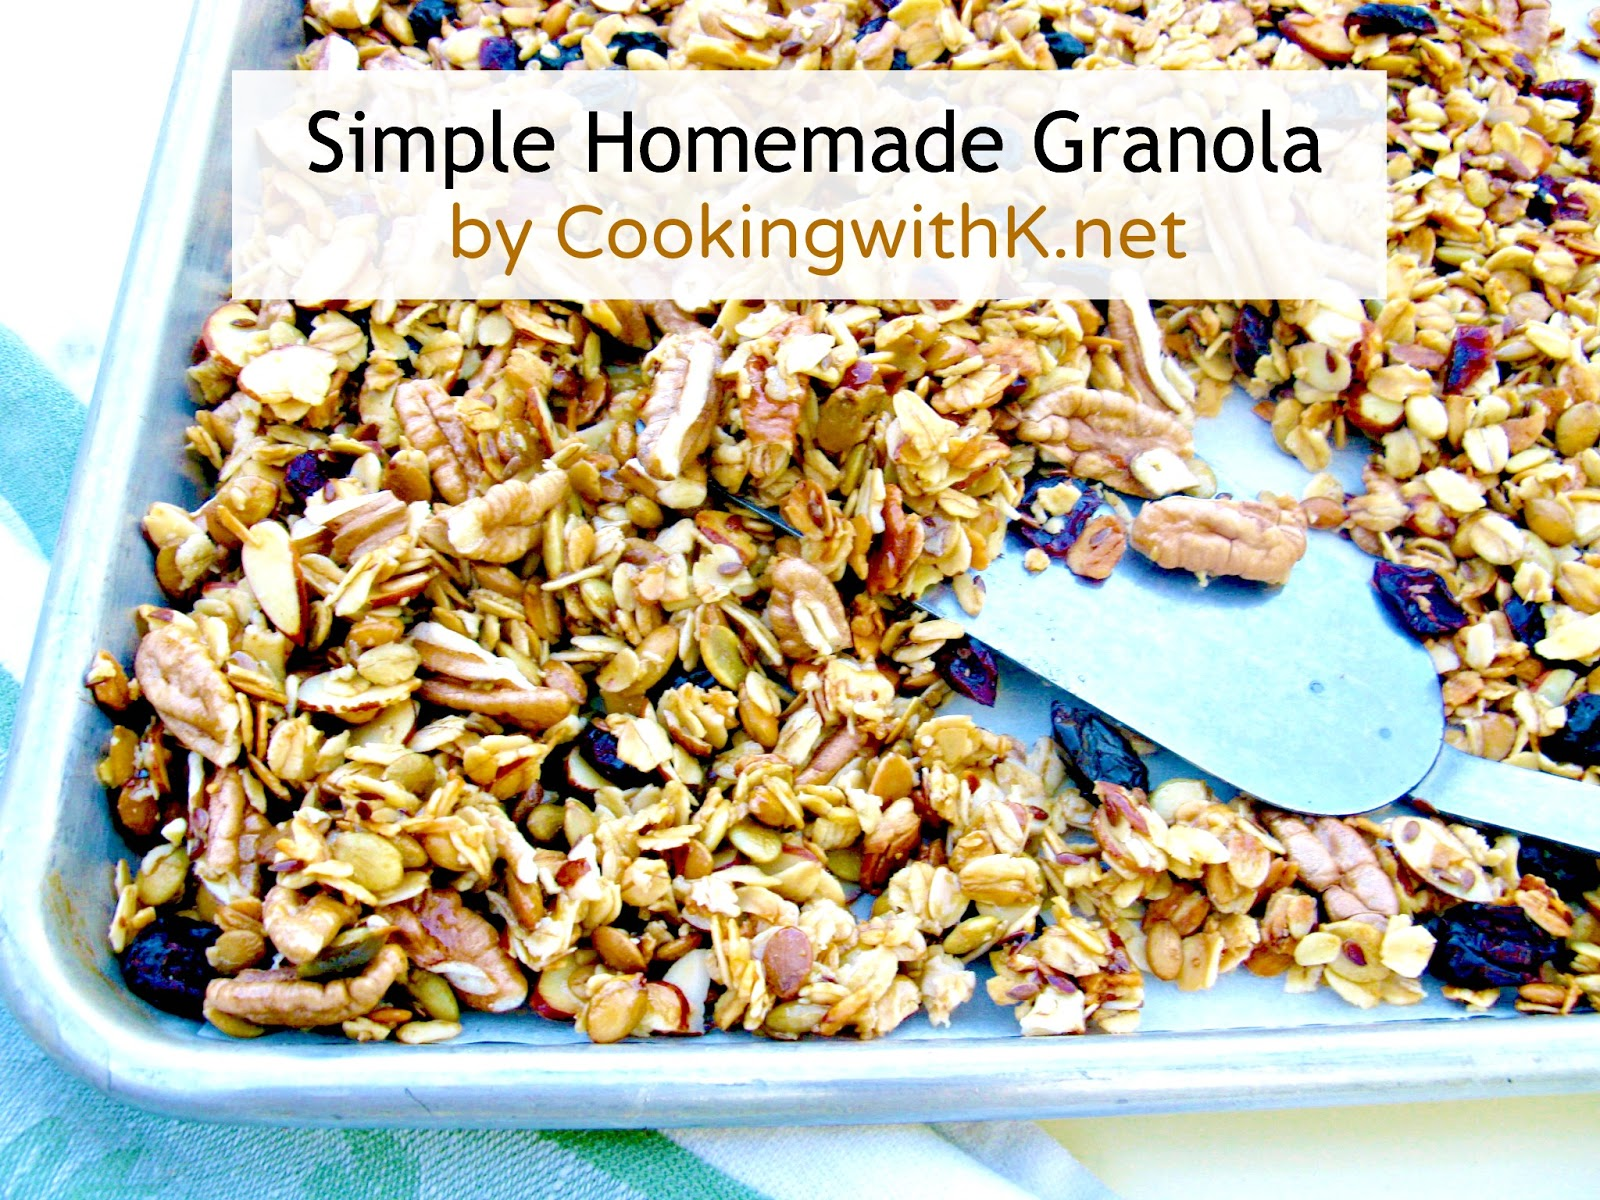 Cooking with K: Simple Homemade Granola